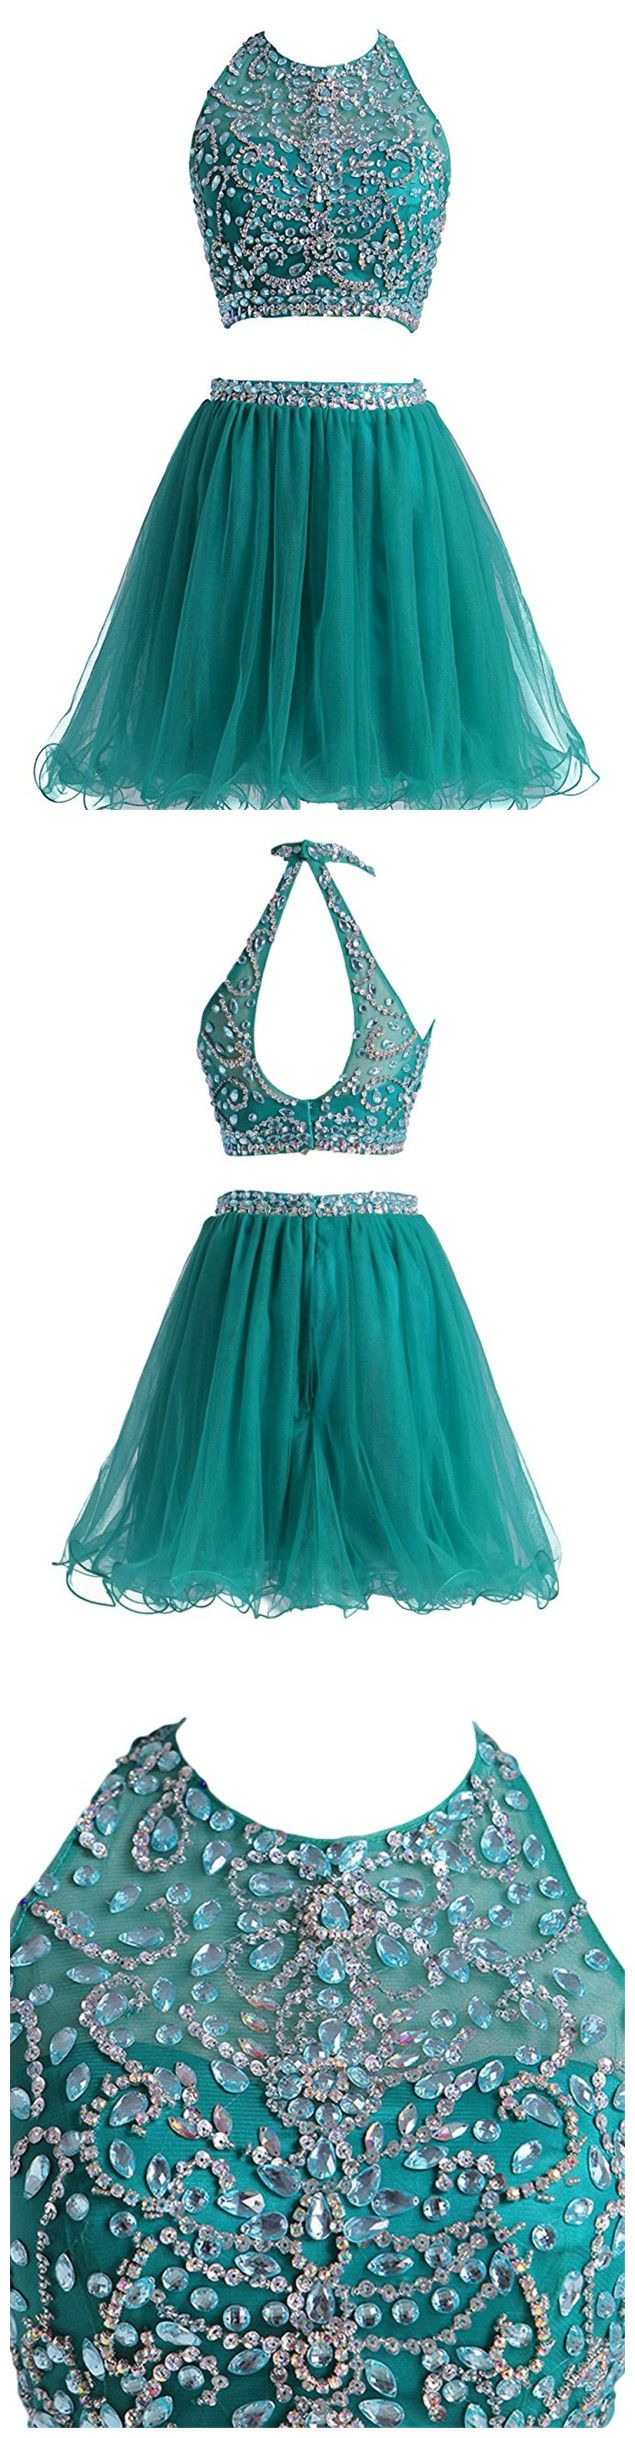 When You Order Please Tell Me Your Phone Number For Shipping Needs This Is Very Important The Details Cotillion Dresses Homecoming Dresses Dresses [ 2438 x 635 Pixel ]